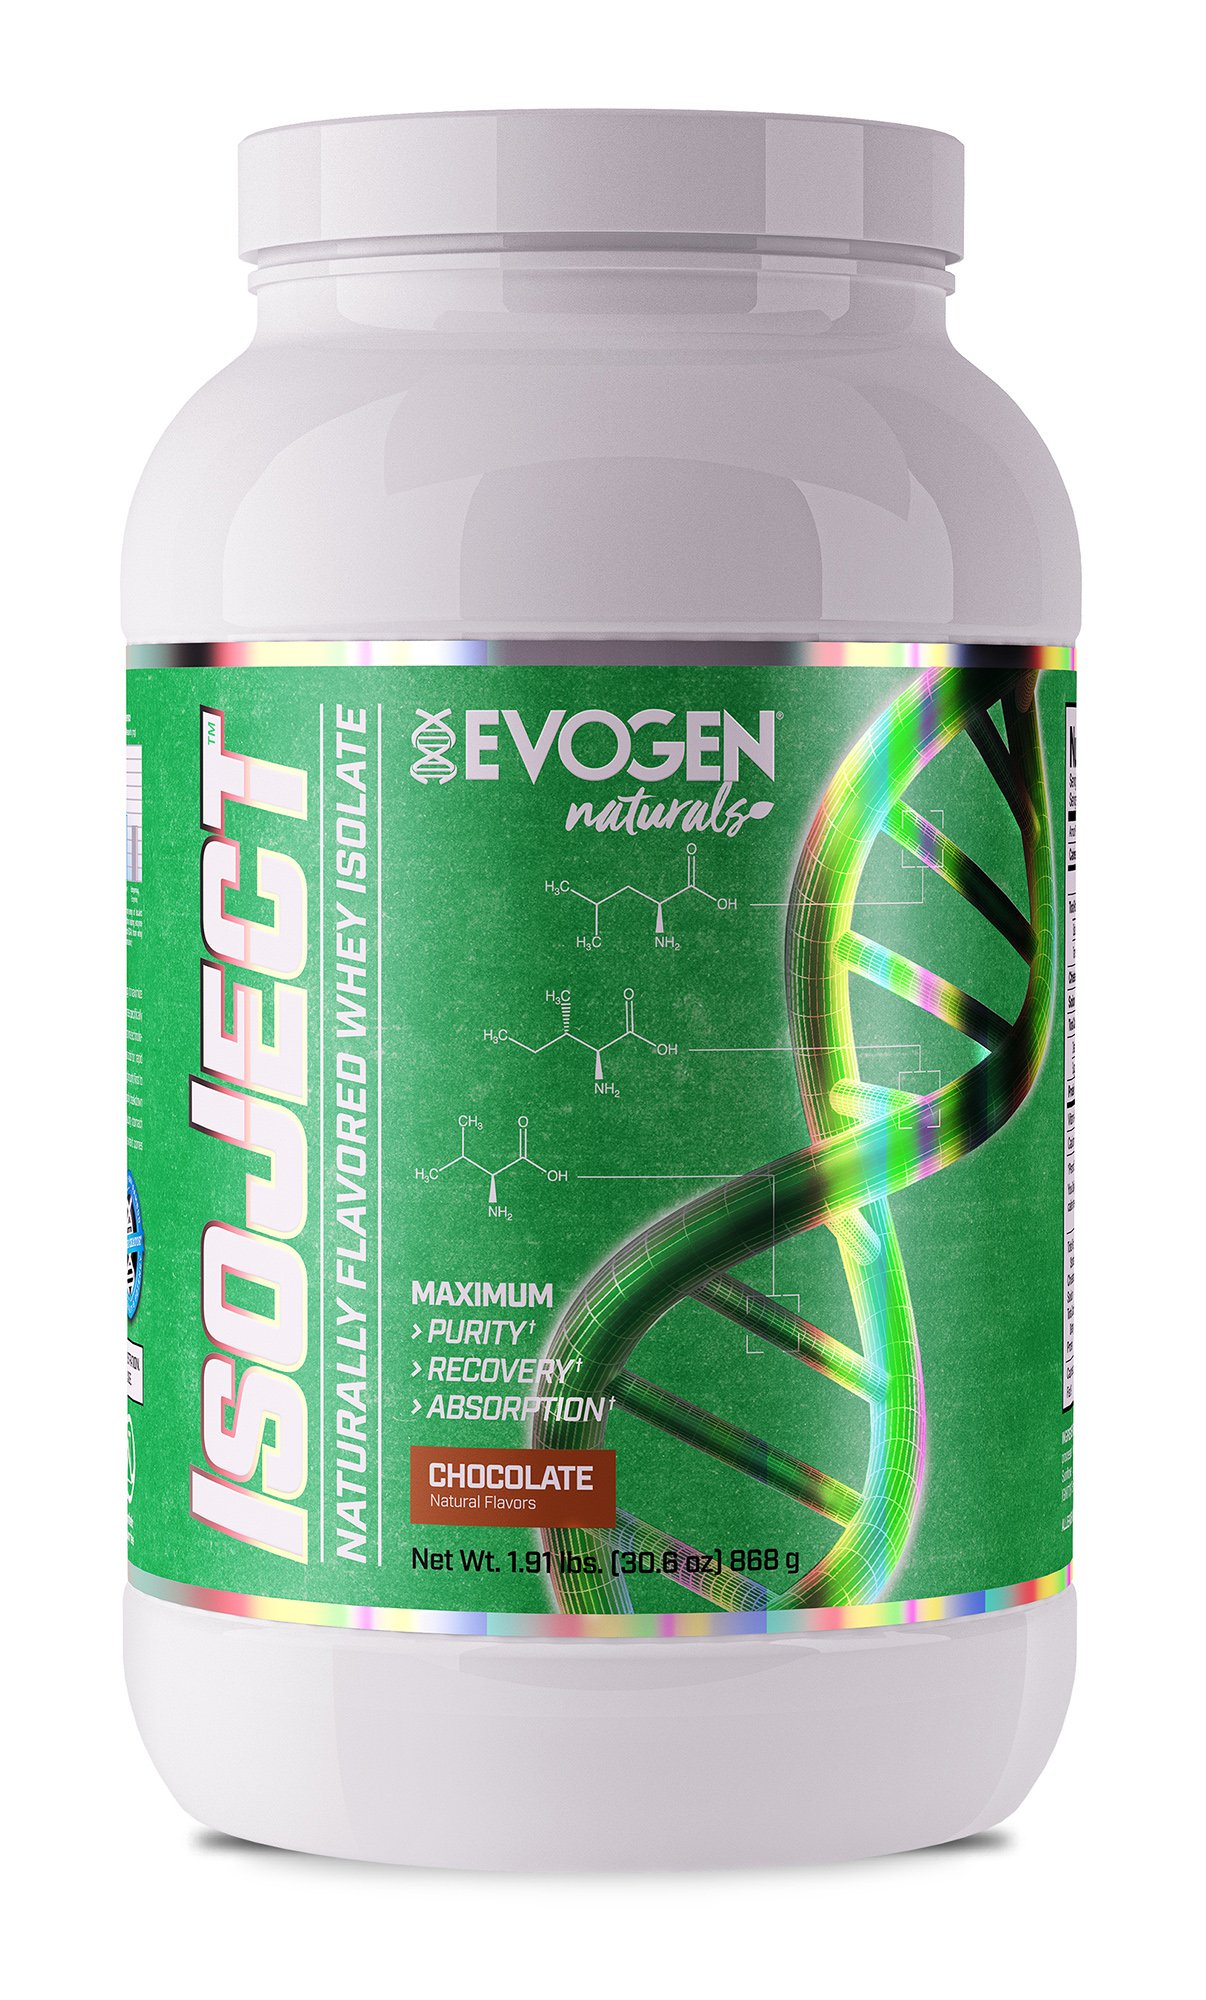 Evogen Naturals Isoject | Premium Whey Isolate w/Digestive Enzymes | 28 Servings | Chocolate